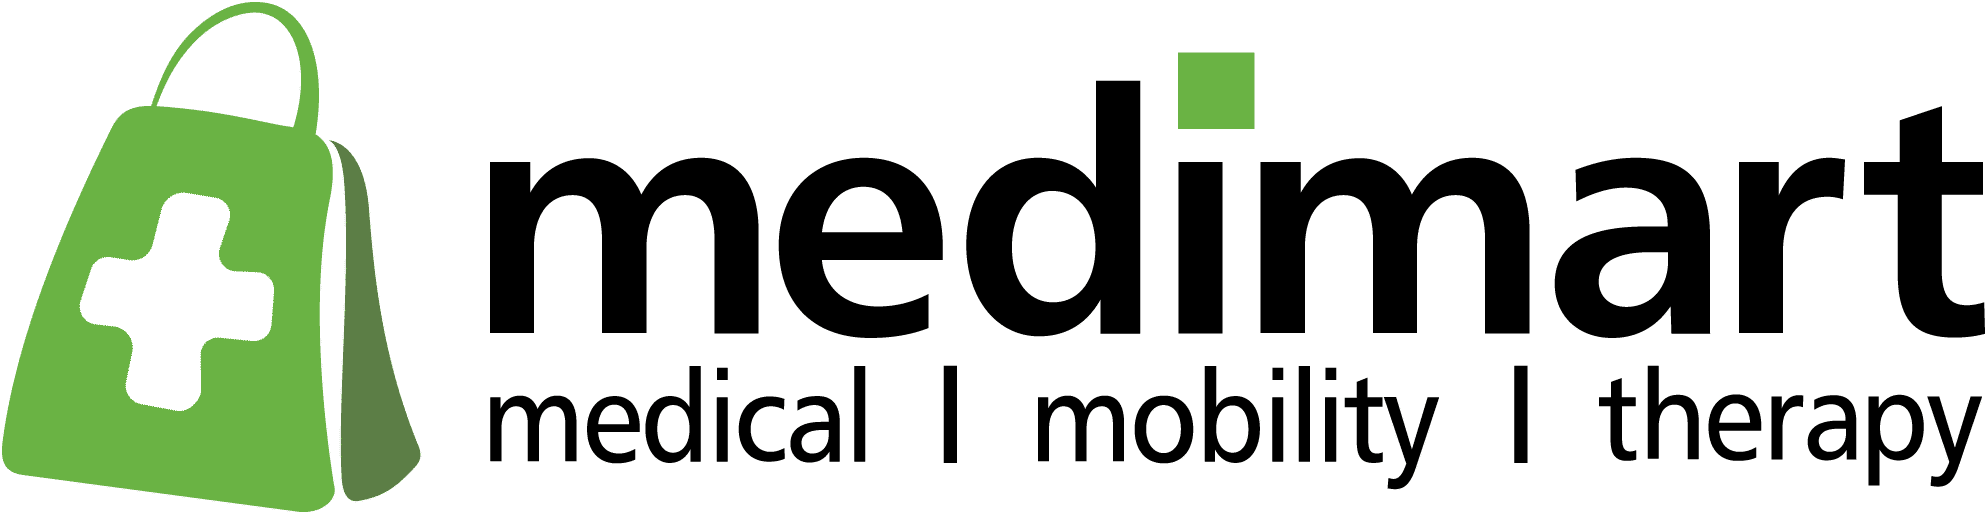 Medimart - Medical Suppliers & Equipment At The Right Price